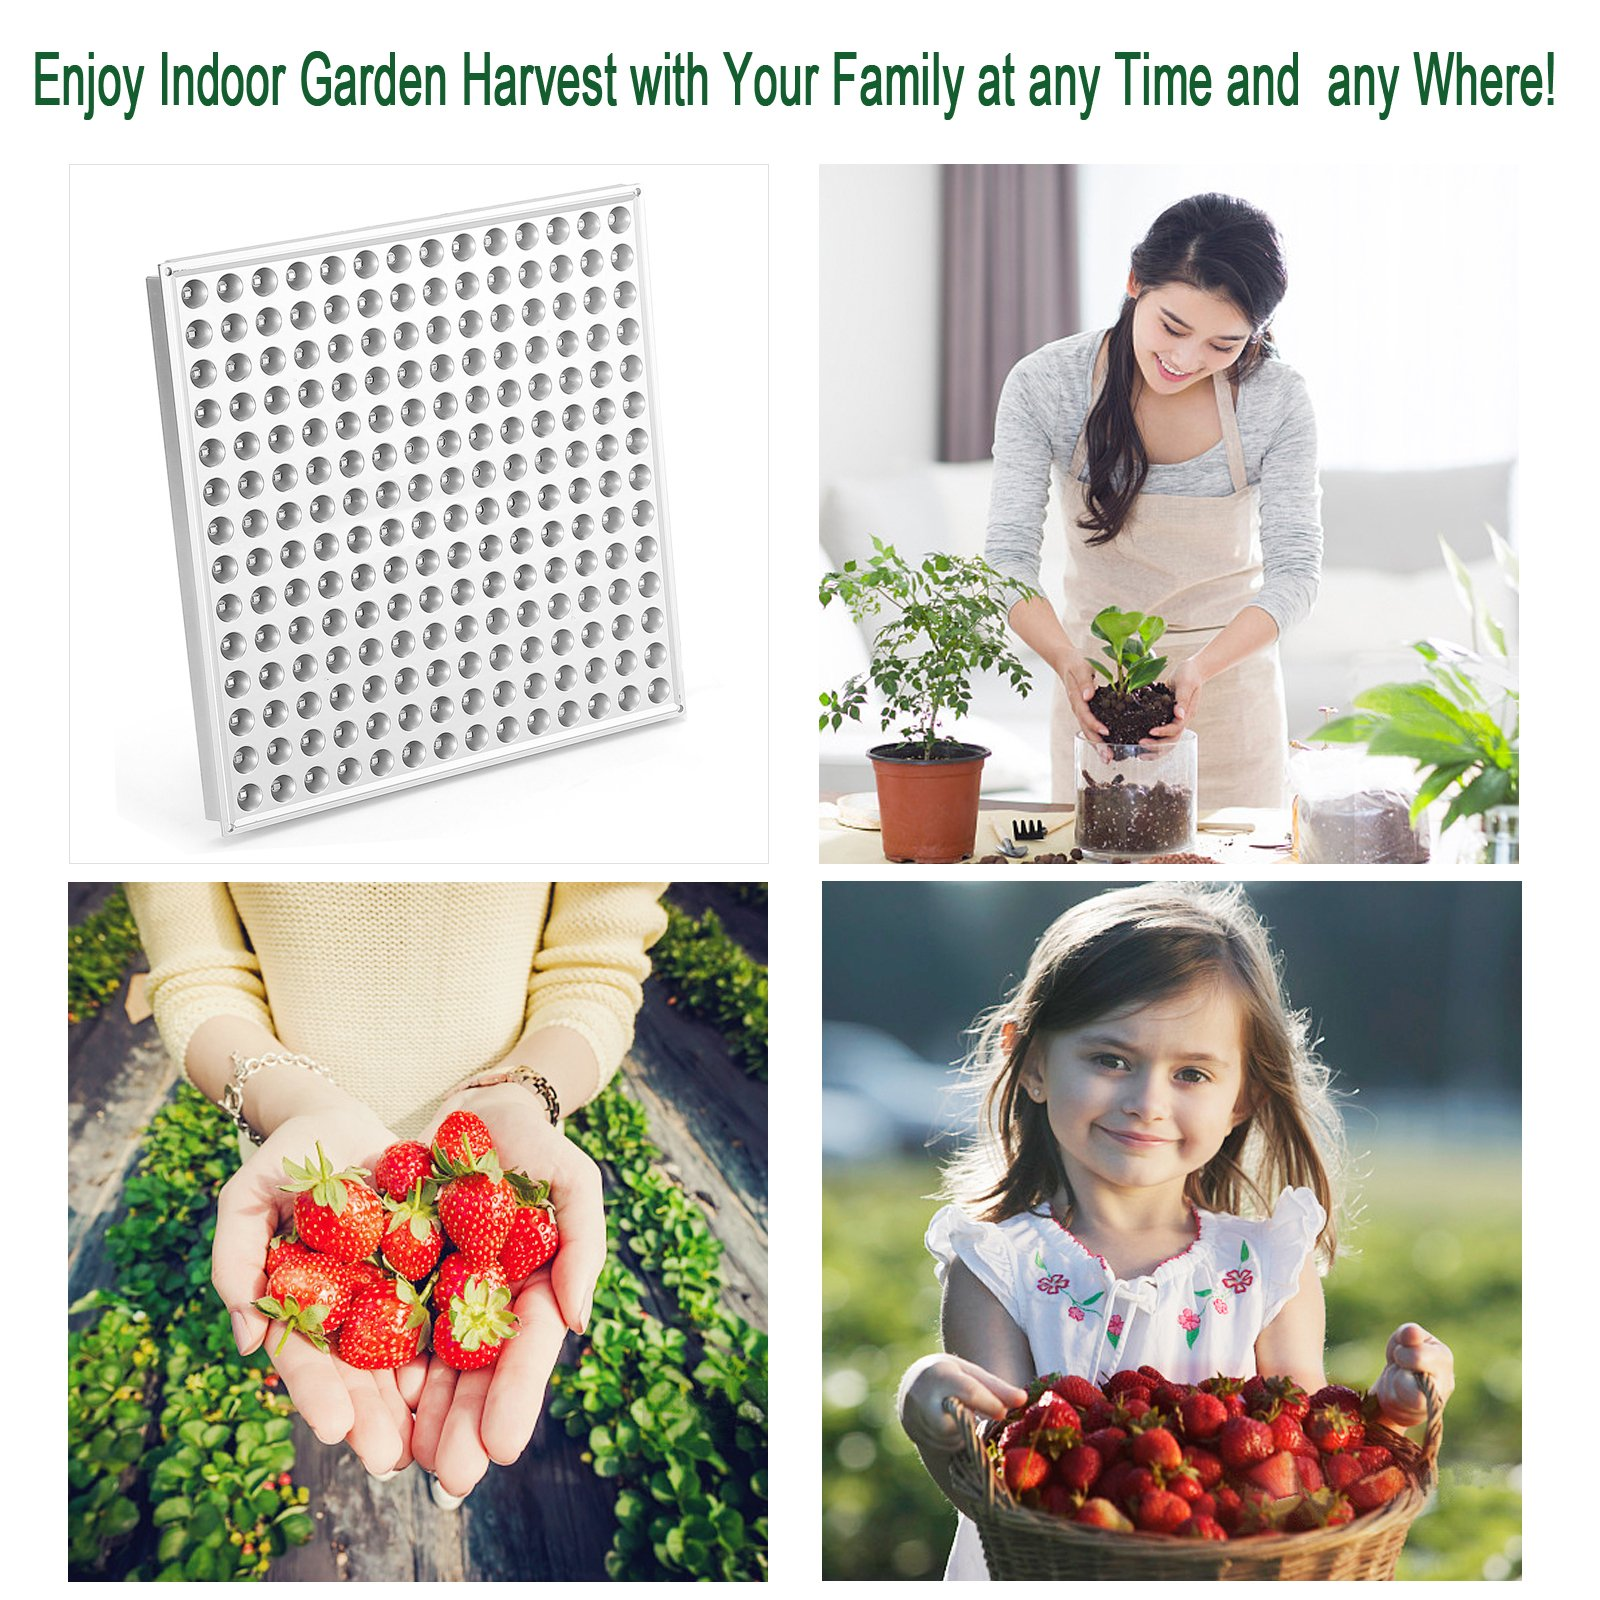 LED Grow Light for Indoor Plants,YGROW Upgraded 75W Growing Lamp Light Bulbs with Exclusive Full Spectrum for Greenhouse Hydroponic Plants from Seeding to Harvest by YGROW (Image #5)